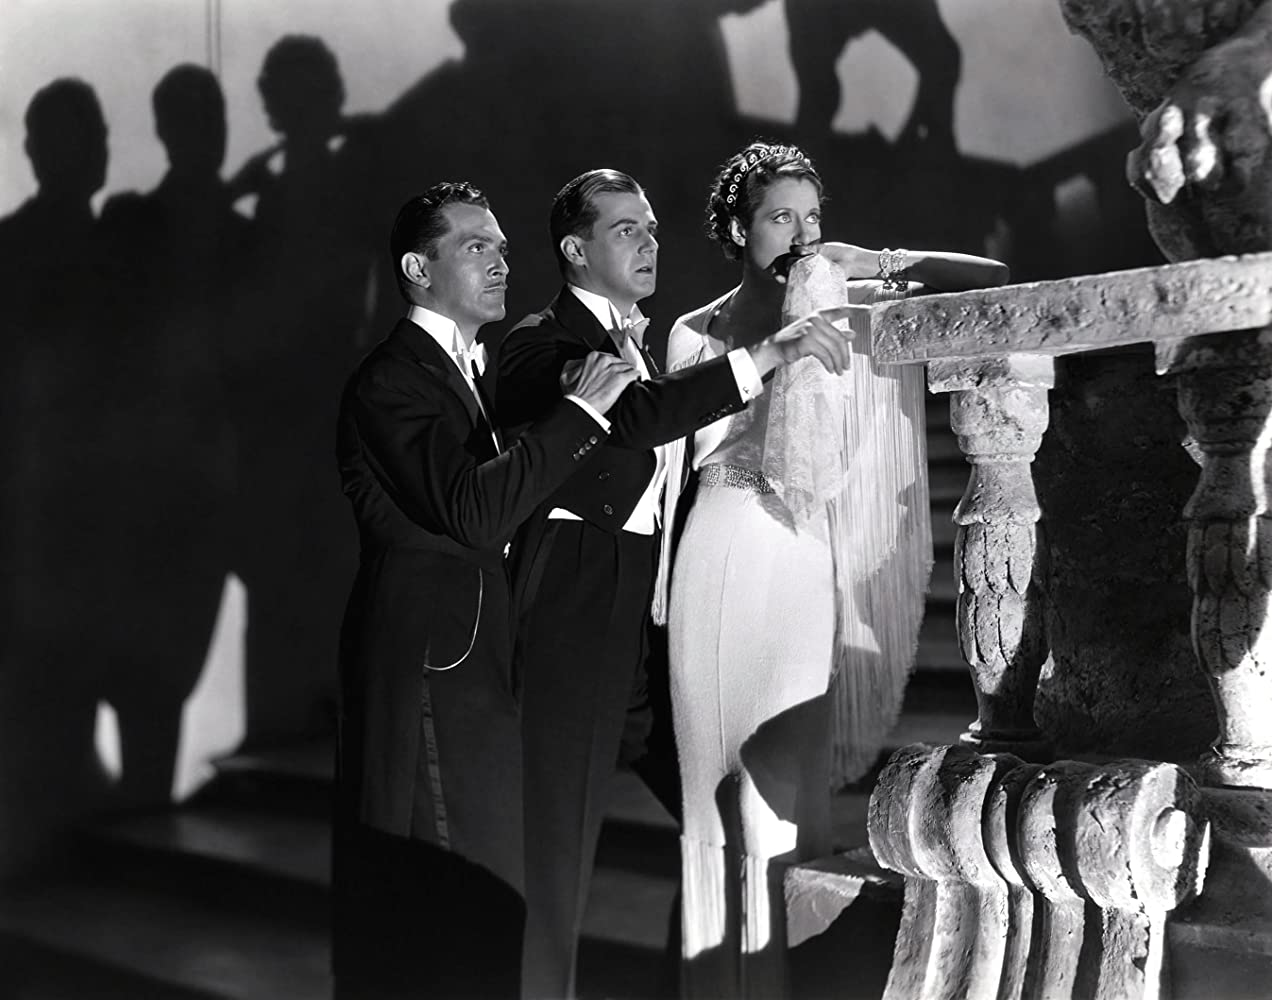 Katharine Alexander, G.P. Huntley, and Kent Taylor in Death Takes a Holiday (1934)